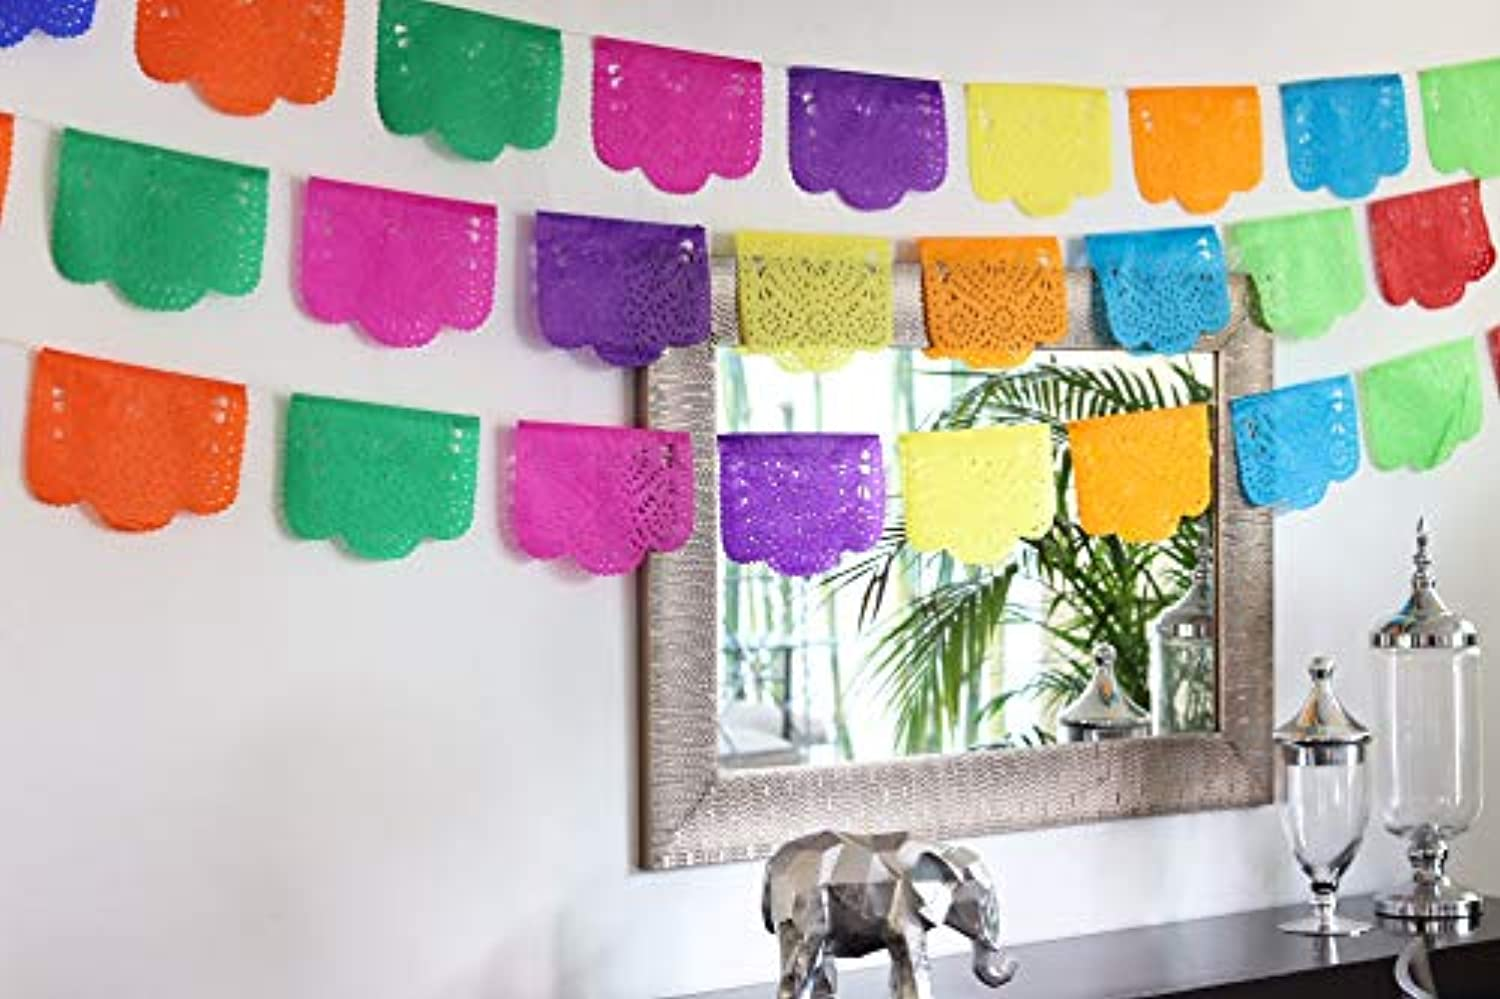 Fiesta Brands 30 Panel Pack. Mexican Papel Picado Banner.Colores de Primavera.Over 8.8m Long for Maximum Coverage. Vibrant Colours Tissue Paper. Small Size Panels. Multicoloured Flowers Design